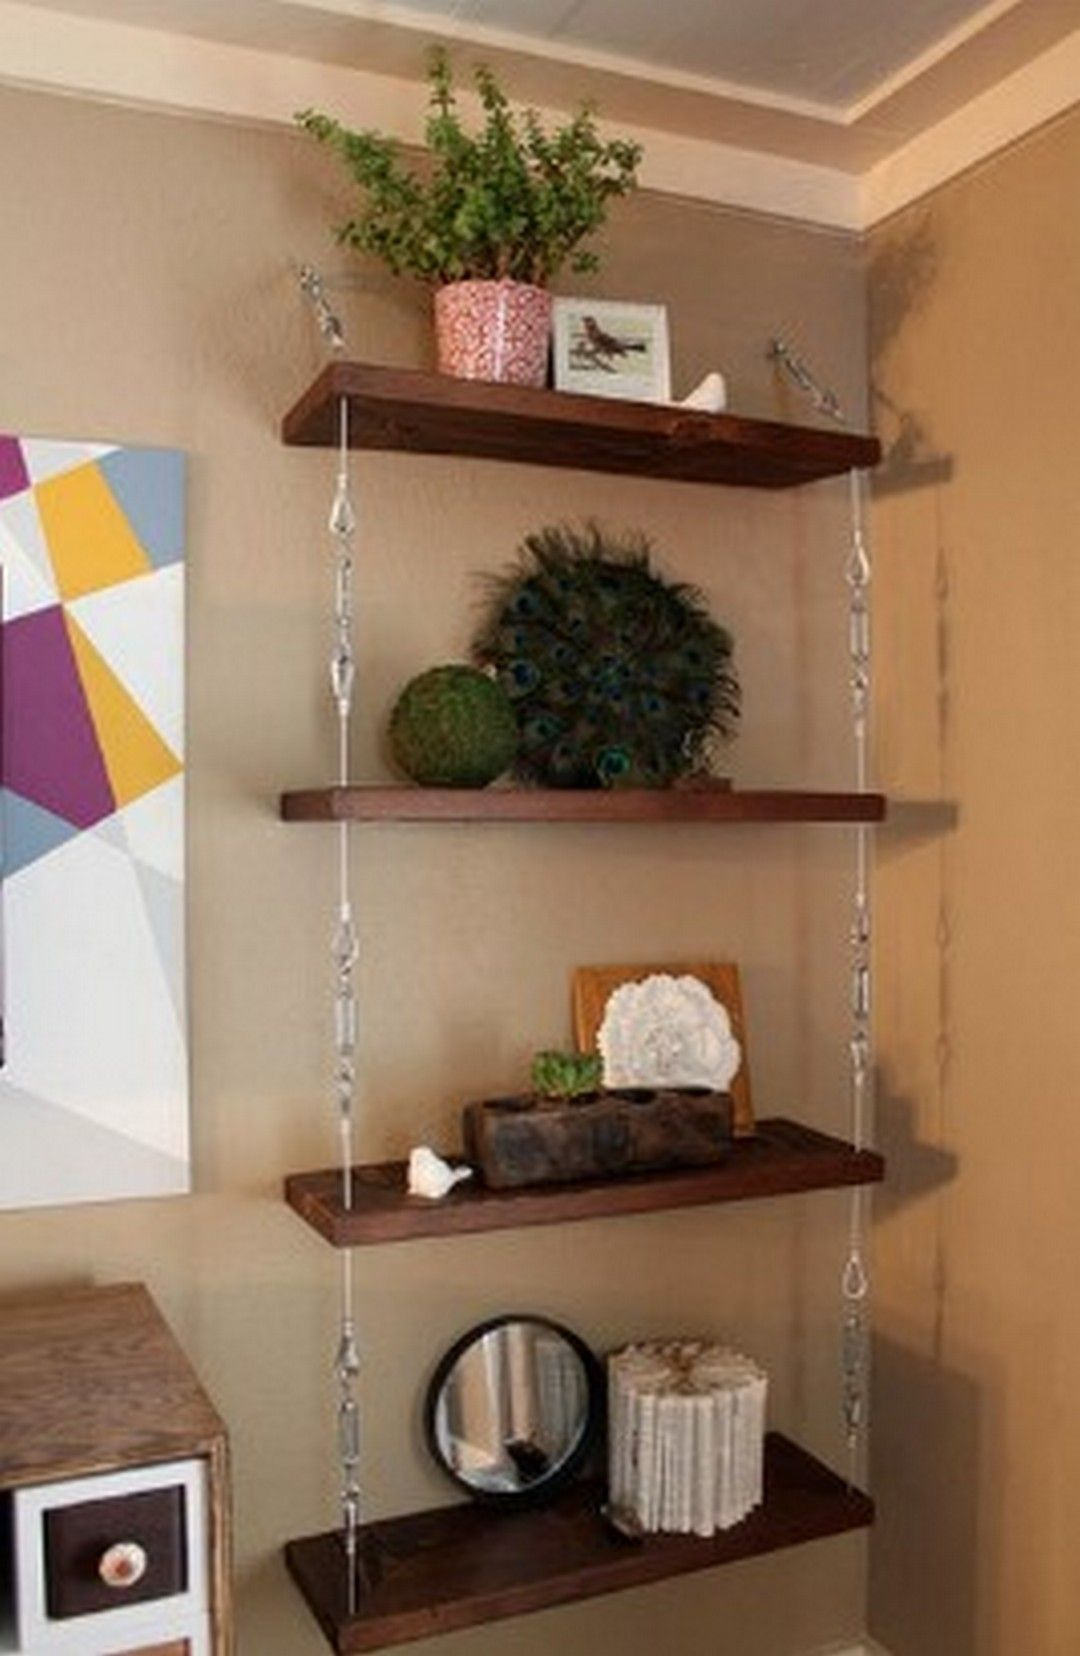 5 Floating Rack Ideas To Maximize Your Space Bookshelves Diy